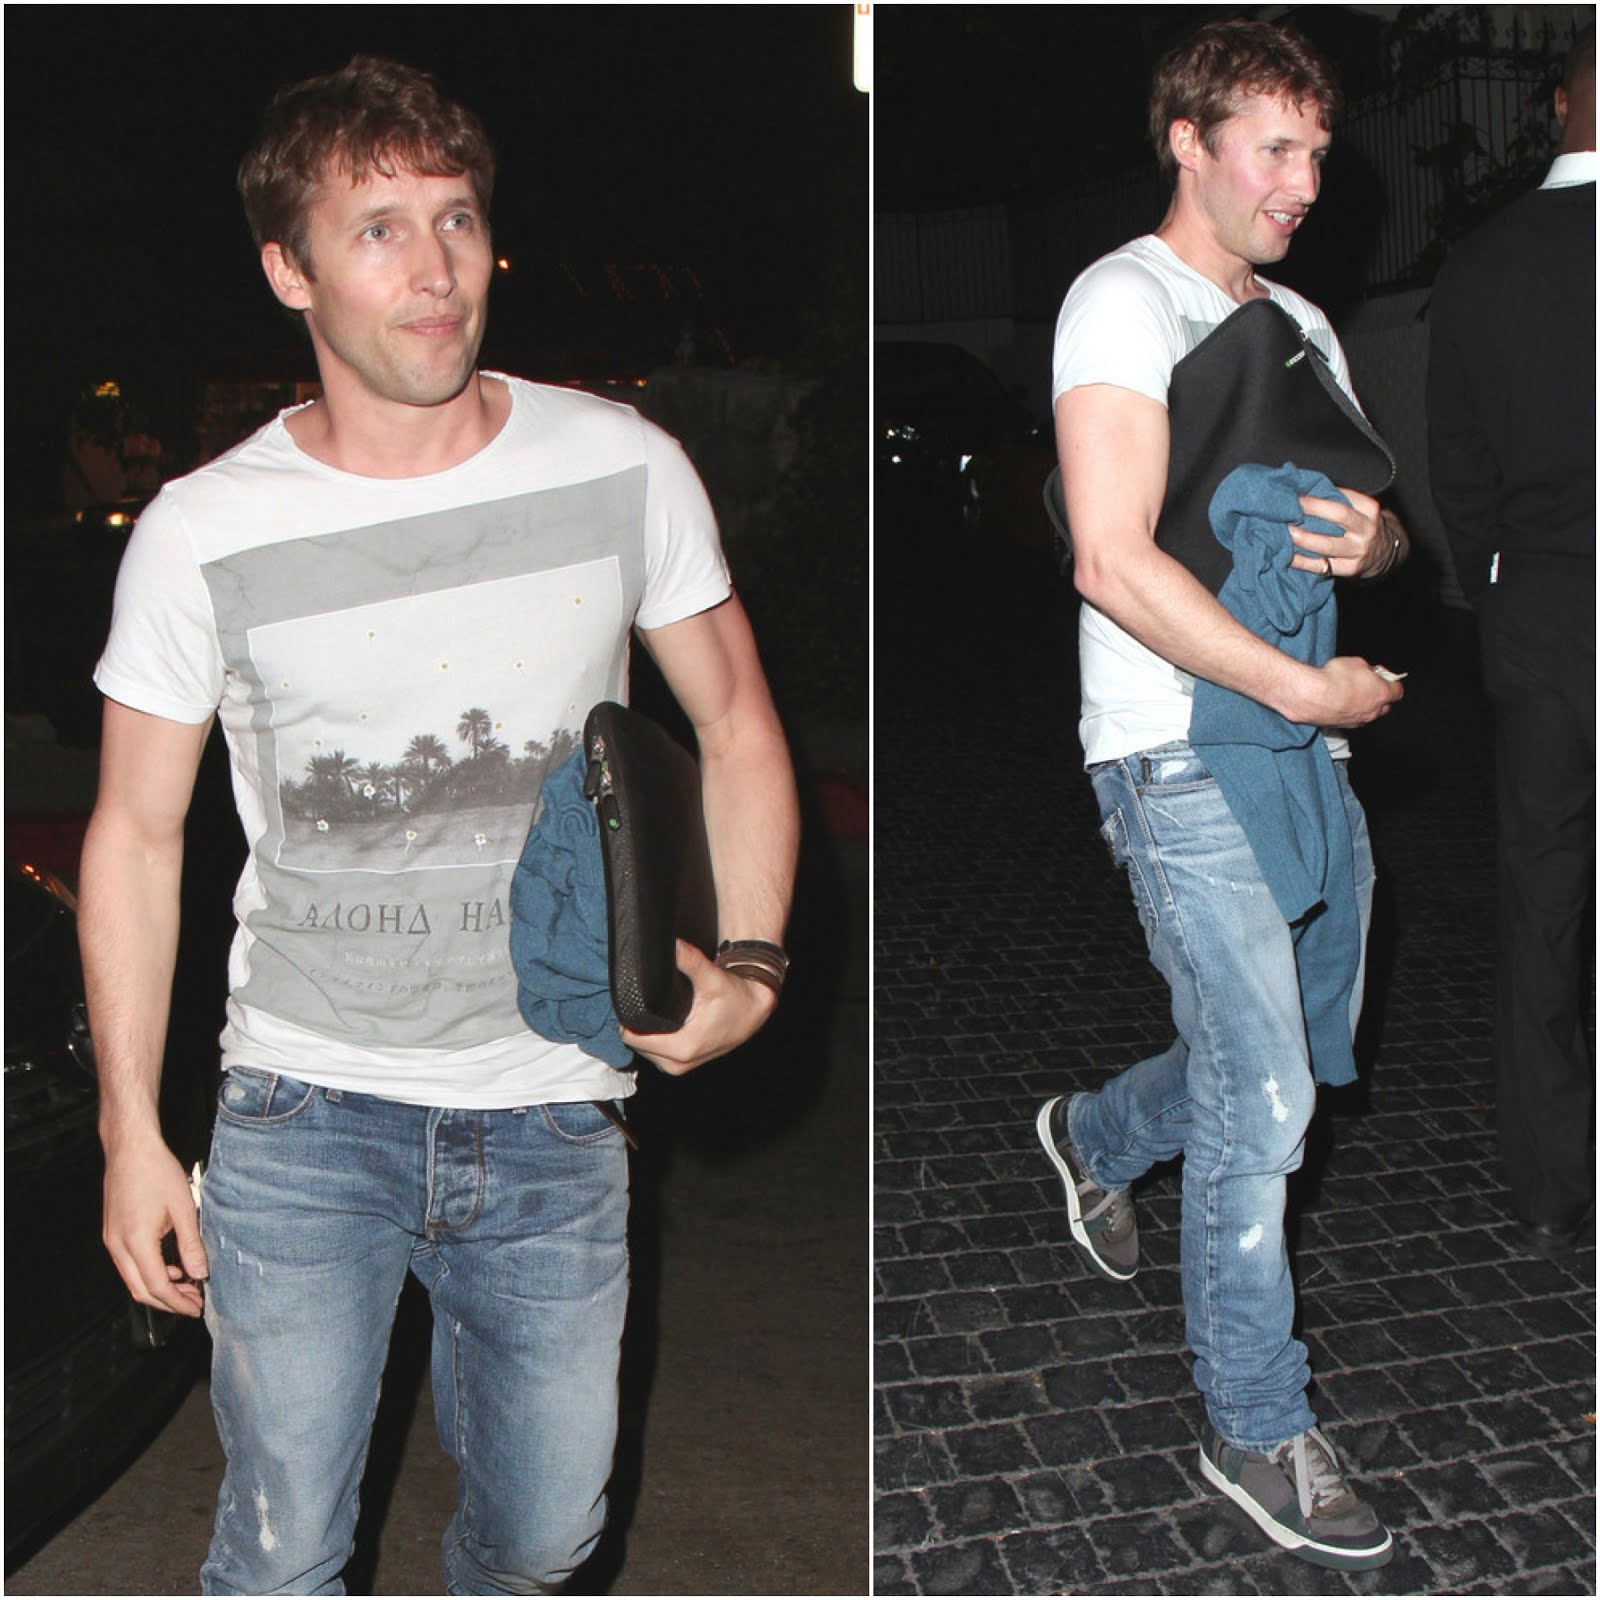 00O00 Menswear Blog: James Blunt in All Saints Aloha t-shirt and Lanvin sneakers - Chateau Marmont May 2013